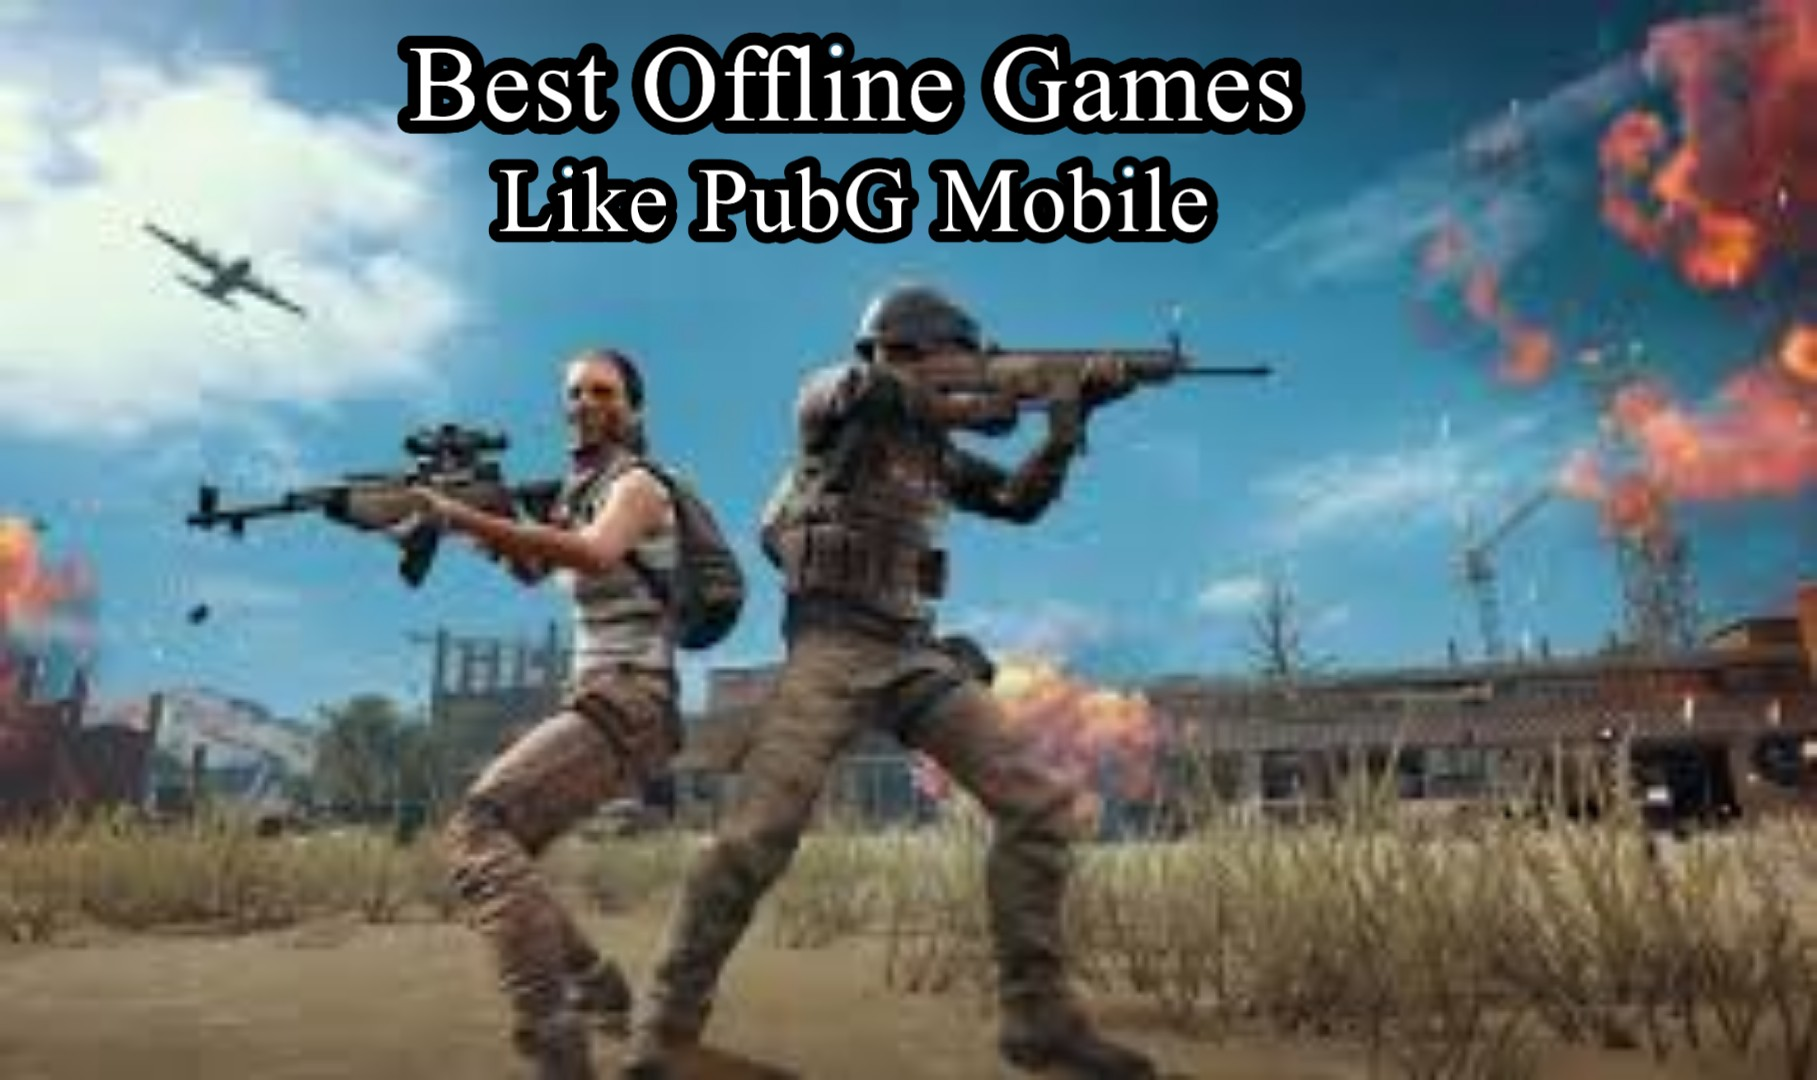 3 Best Offline Games Like PubG Mobile For Android Users